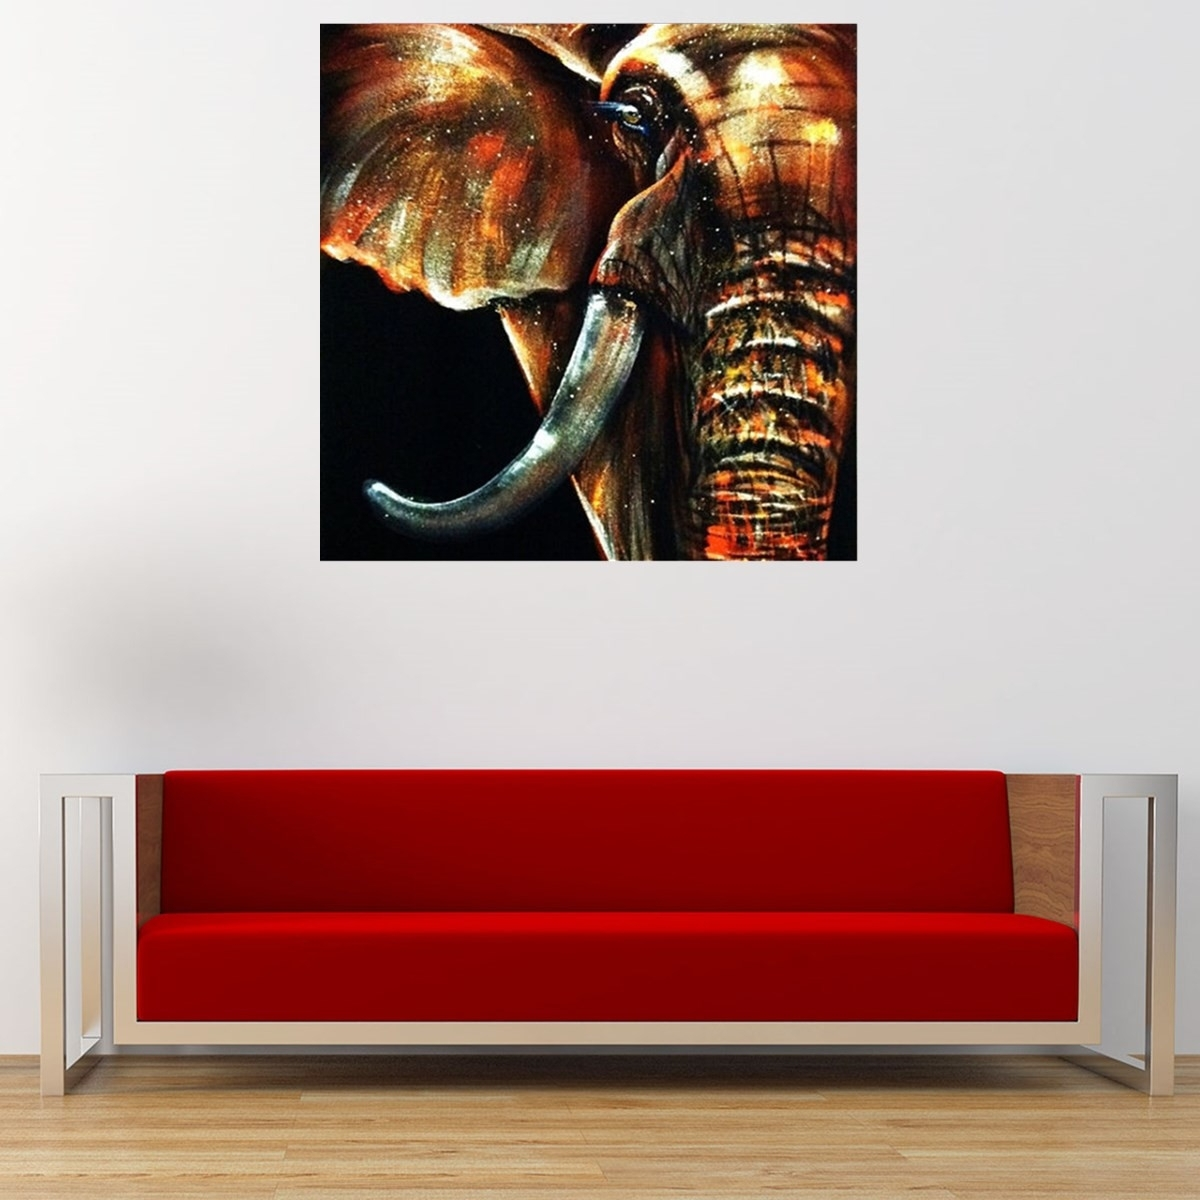 50X50Cm Modern Abstract Huge Elephant Wall Art Decor Oil Painting for Most Up-to-Date Abstract Elephant Wall Art